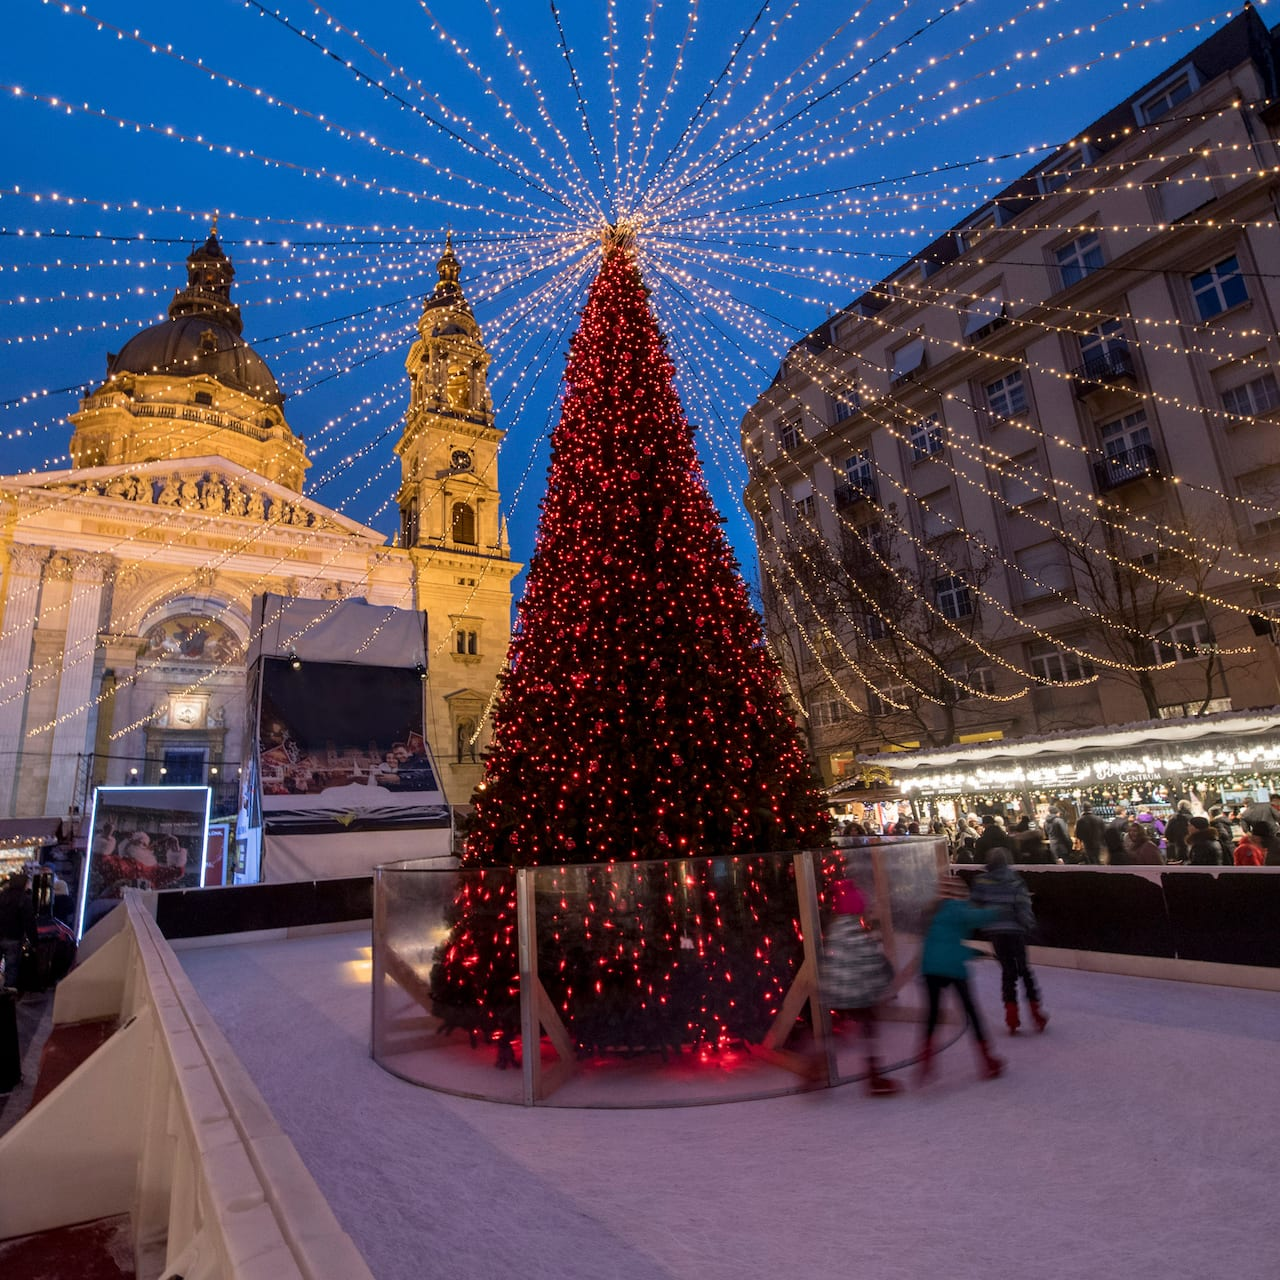 Kids ice skate around a Christmas tree lit up at night in front of St. Stephen's Church in Budapest, Hungary